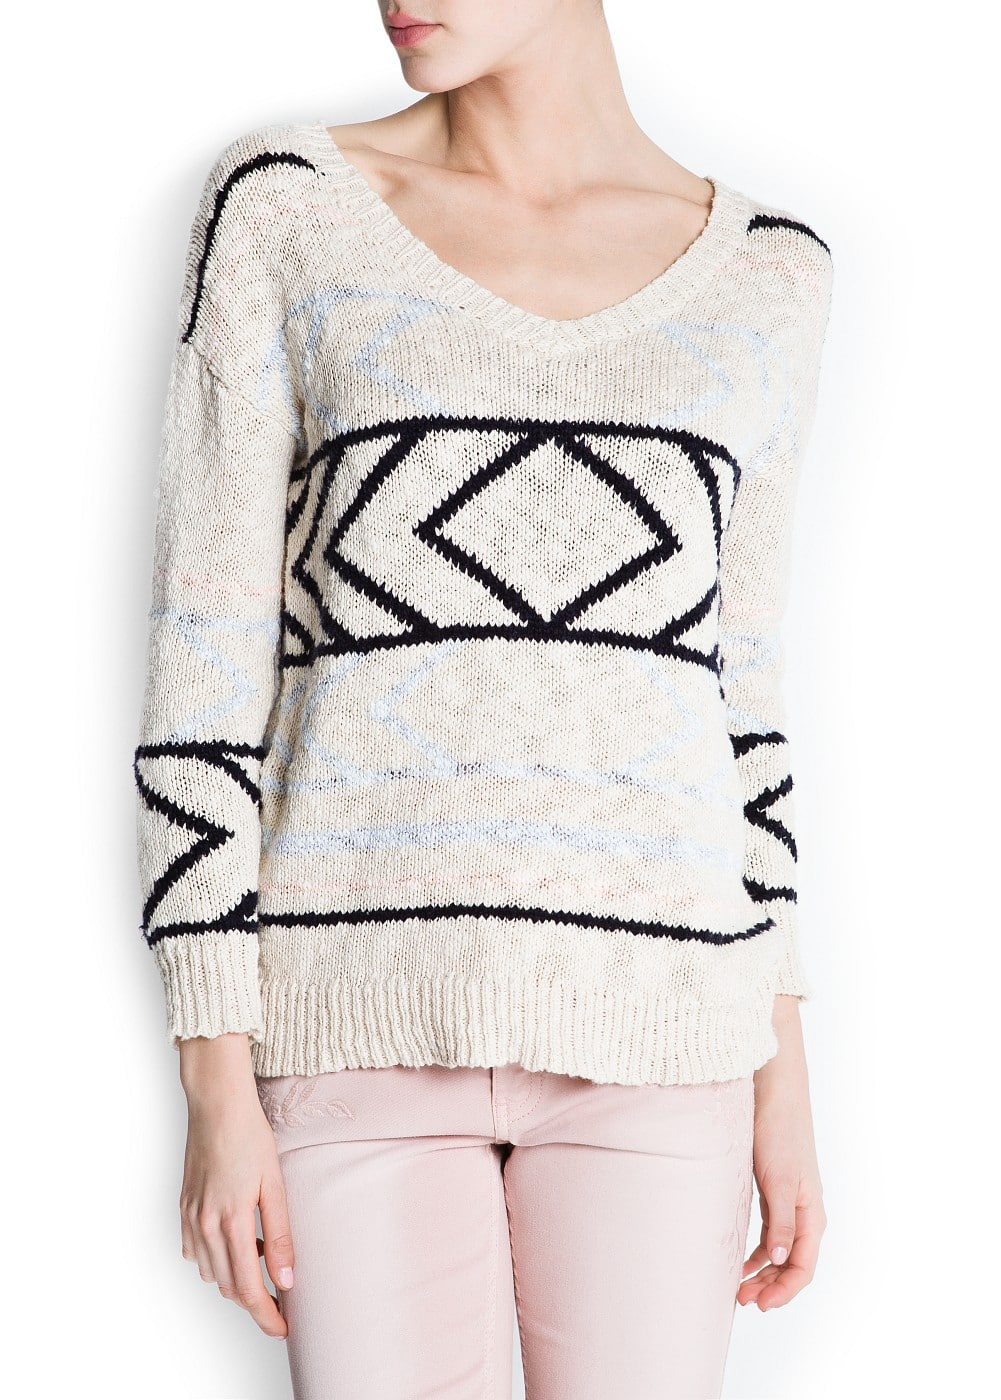 Ethnic inspired jumper